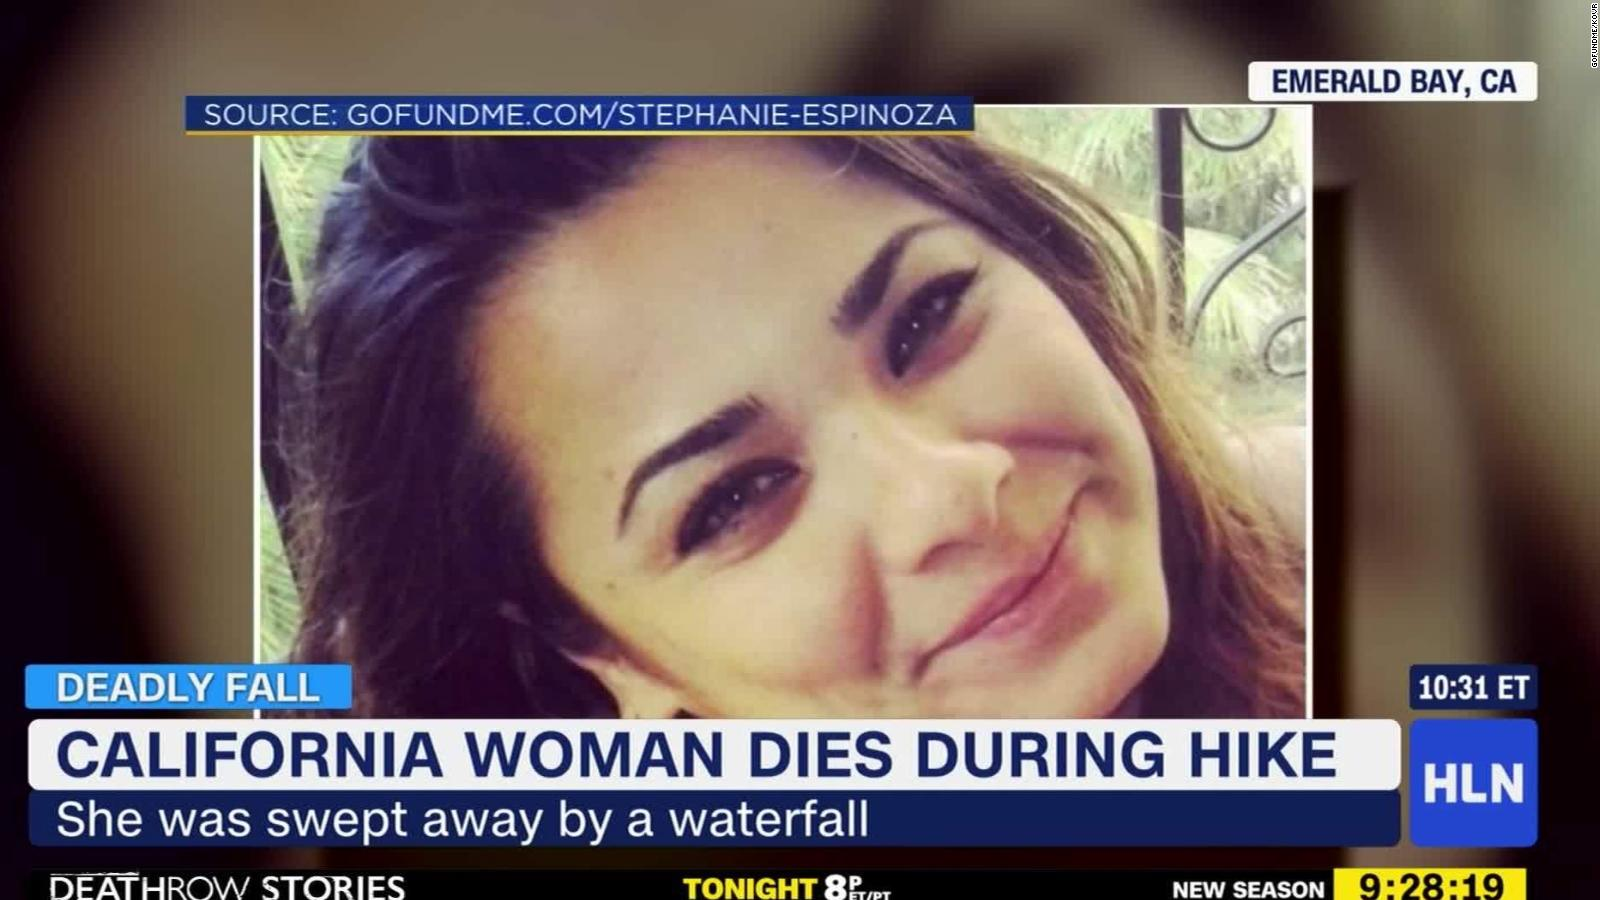 Woman dies after being swept away by waterfall - CNN Video